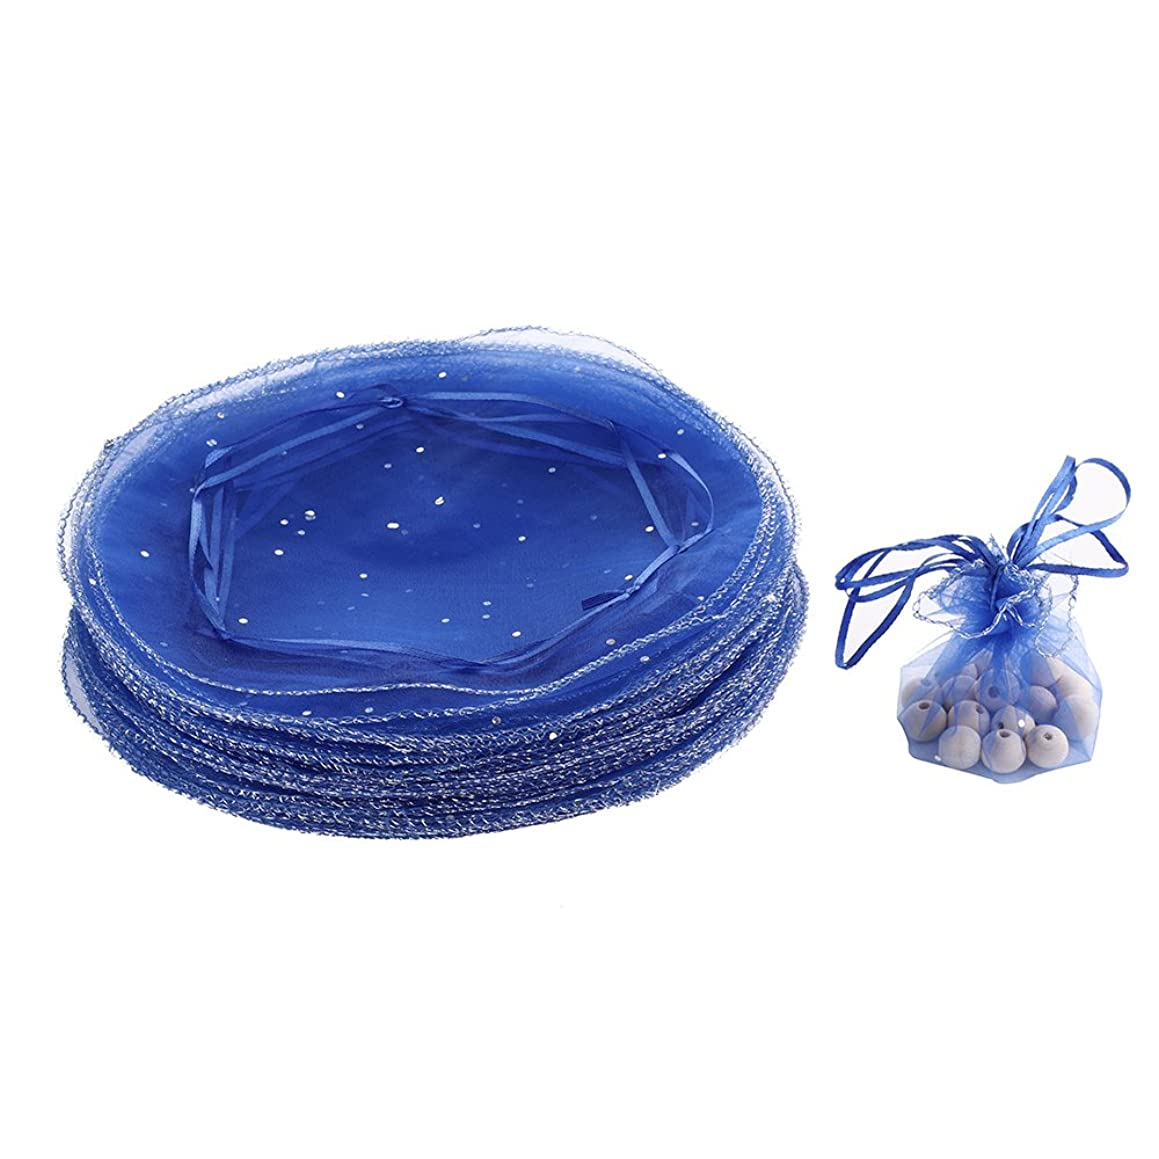 Dealglad 100pcs 25cm Round Drawstring Organza Jewelry Candy Pouch Christmas Wedding Party Favor Gift Packaging Bags (Royal Blue)